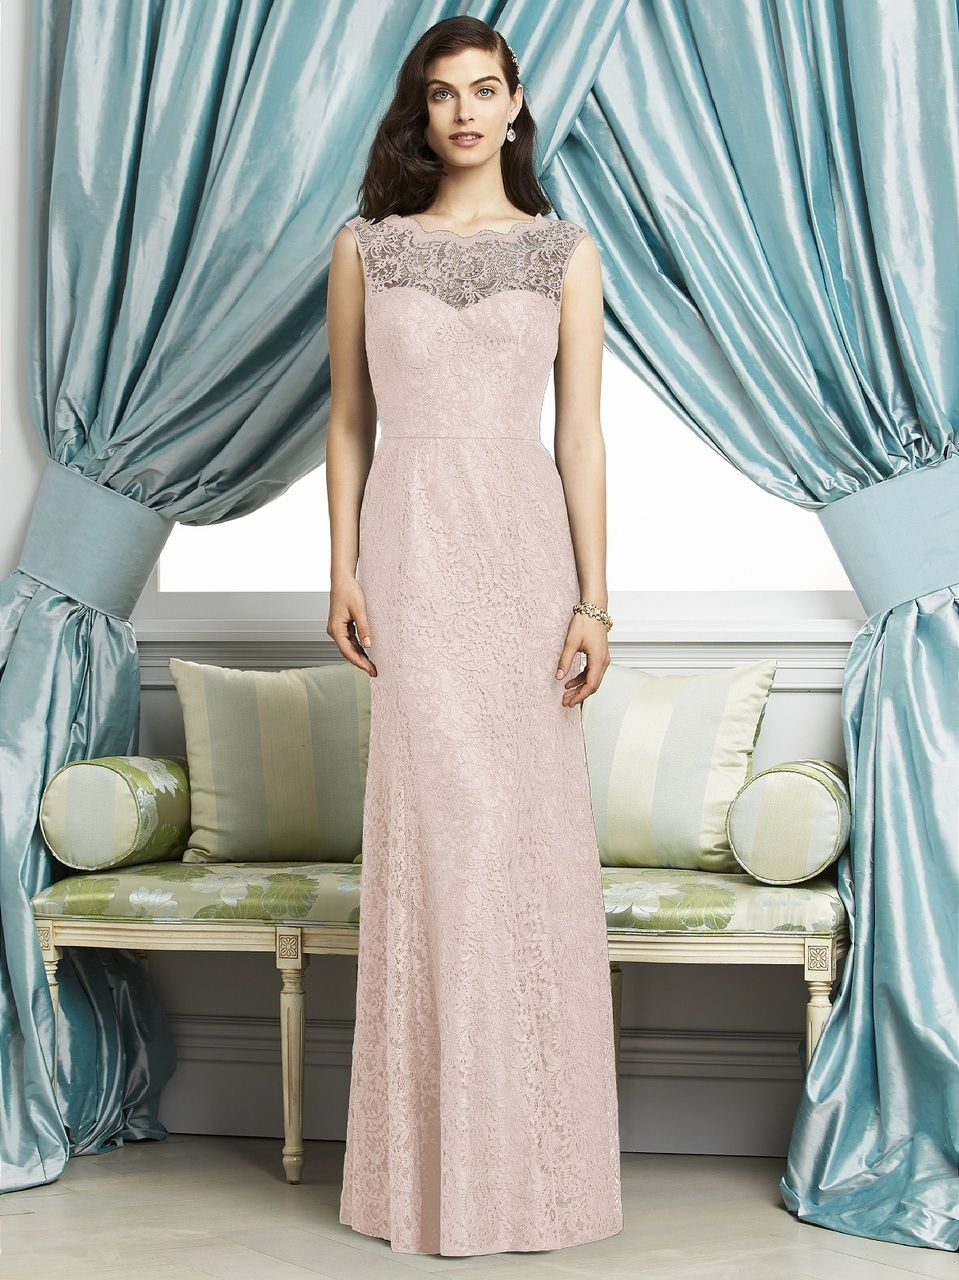 Bridals by lori dessy 2940 20200 httpshopidalsbylori shop dessy bridesmaid dress 2940 in marquis lace at weddington way find the perfect made to order bridesmaid dresses for your bridal party in your ombrellifo Images